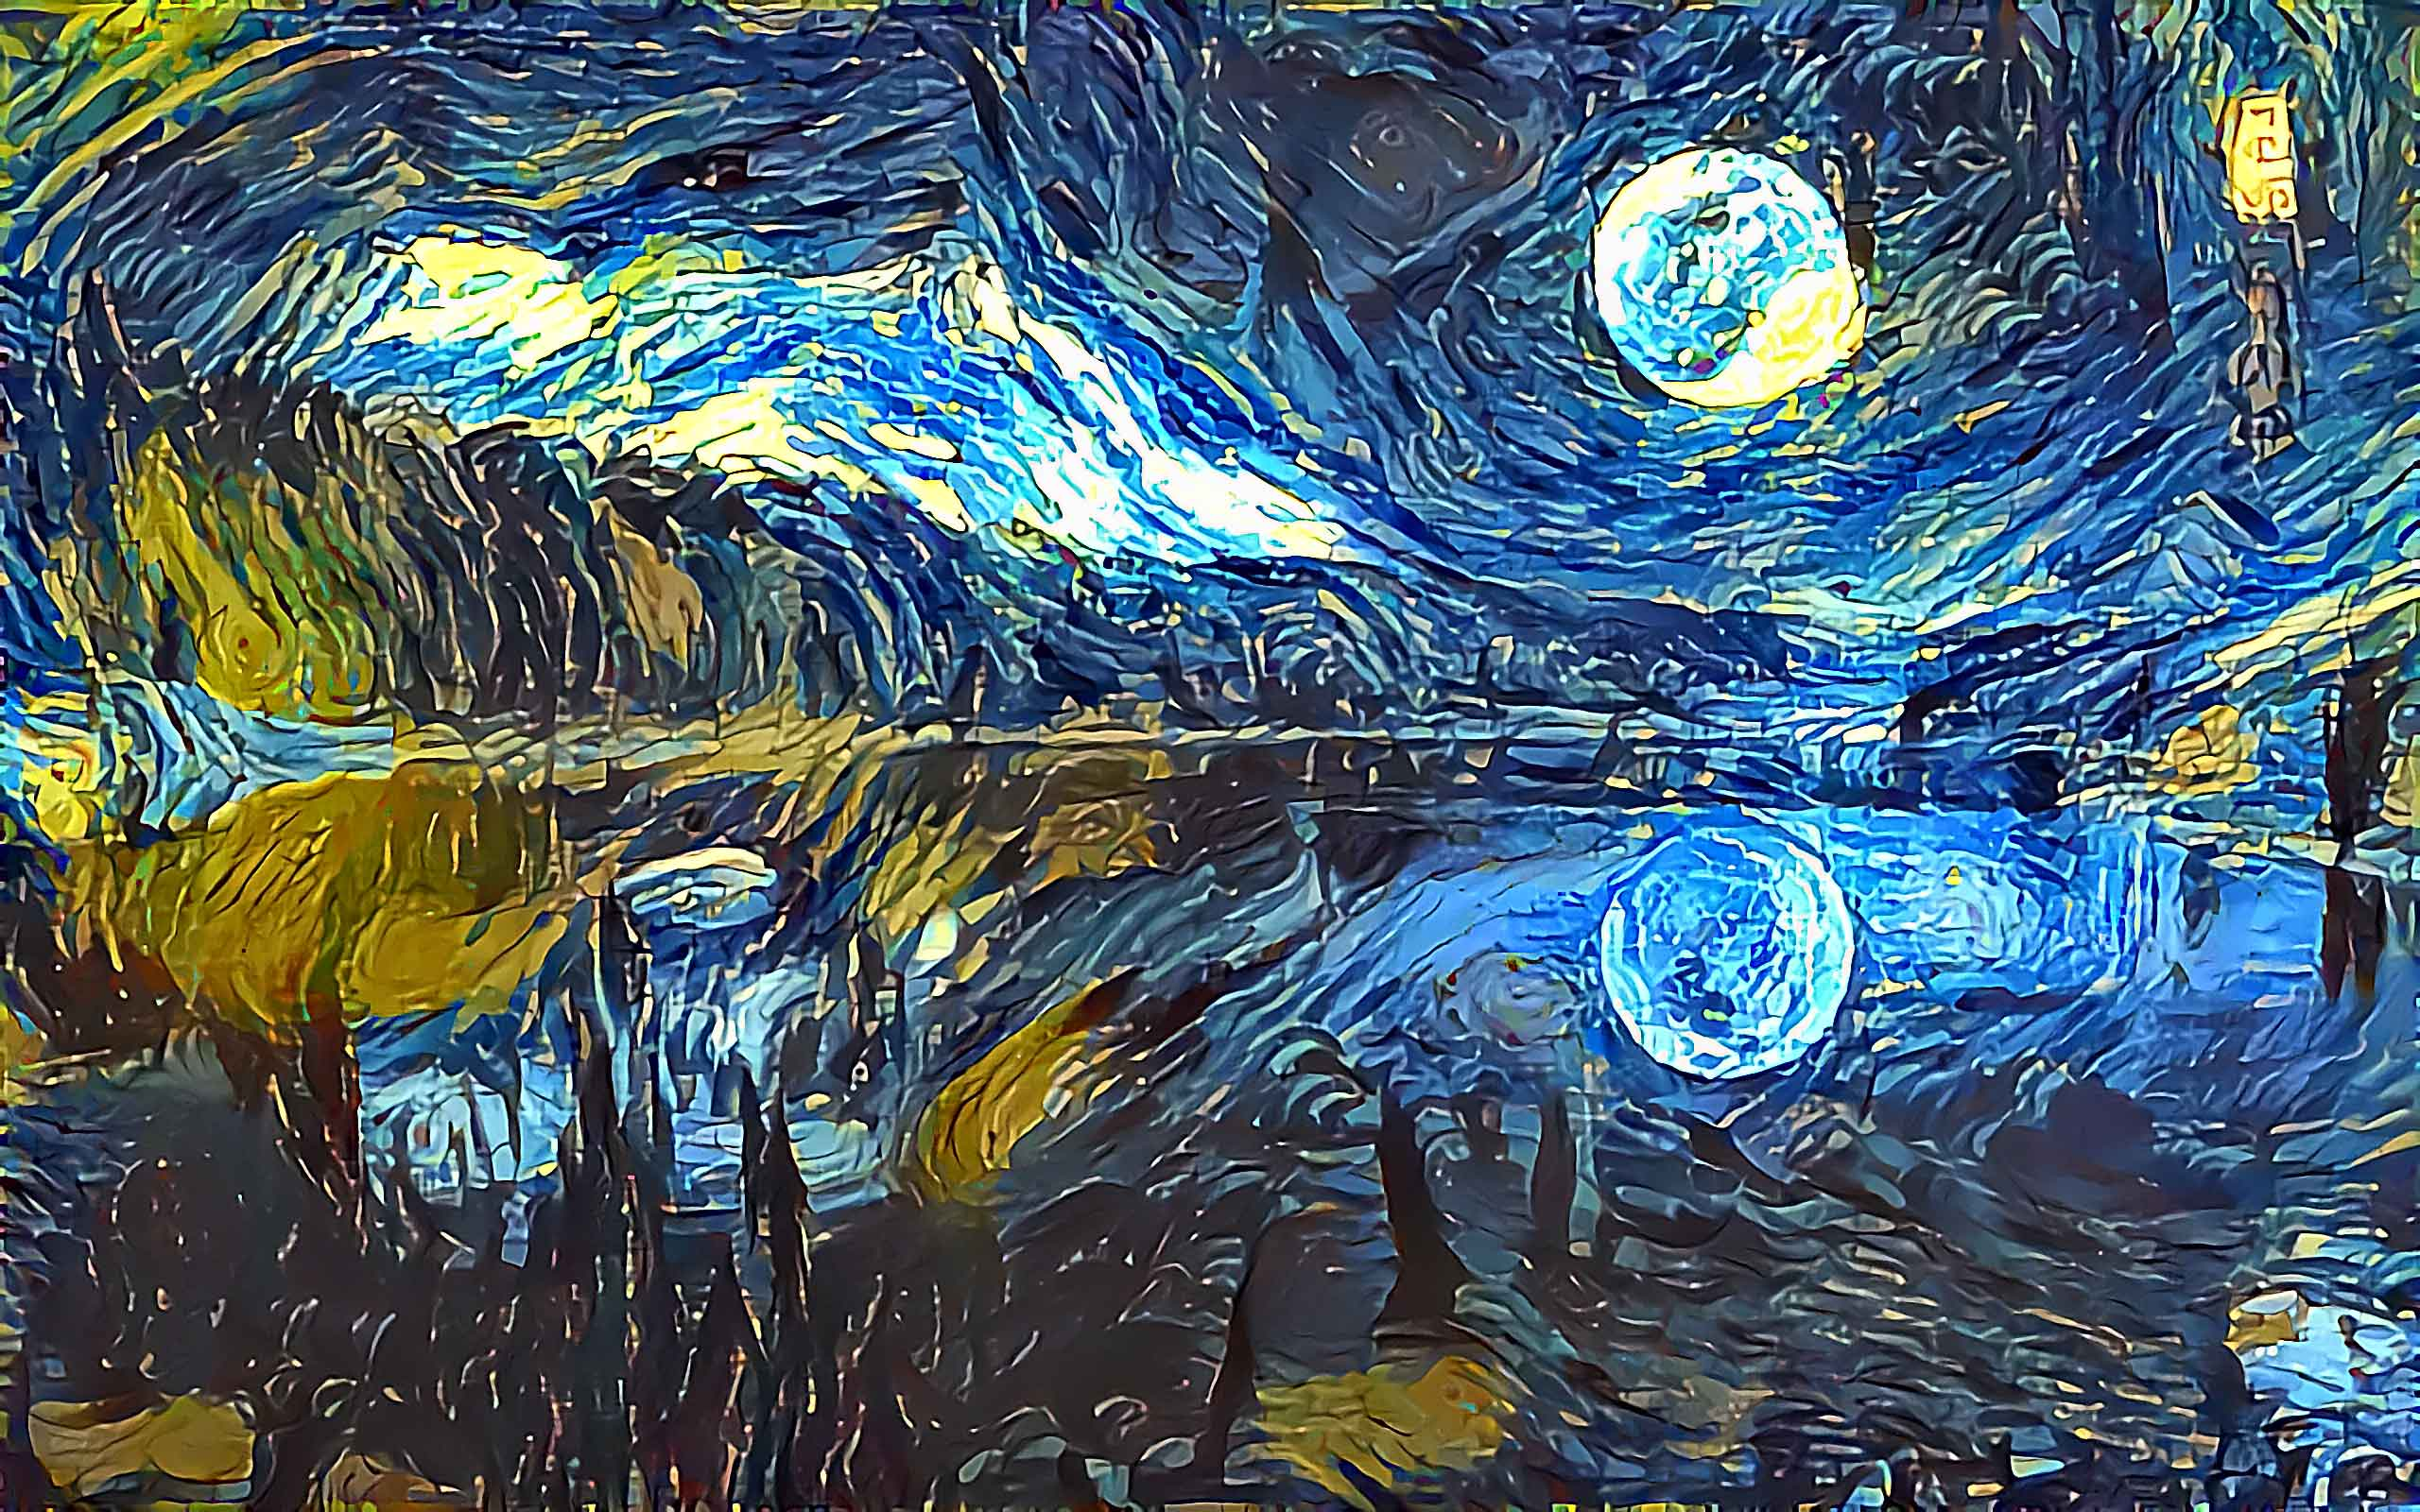 blue moon lake style transfer